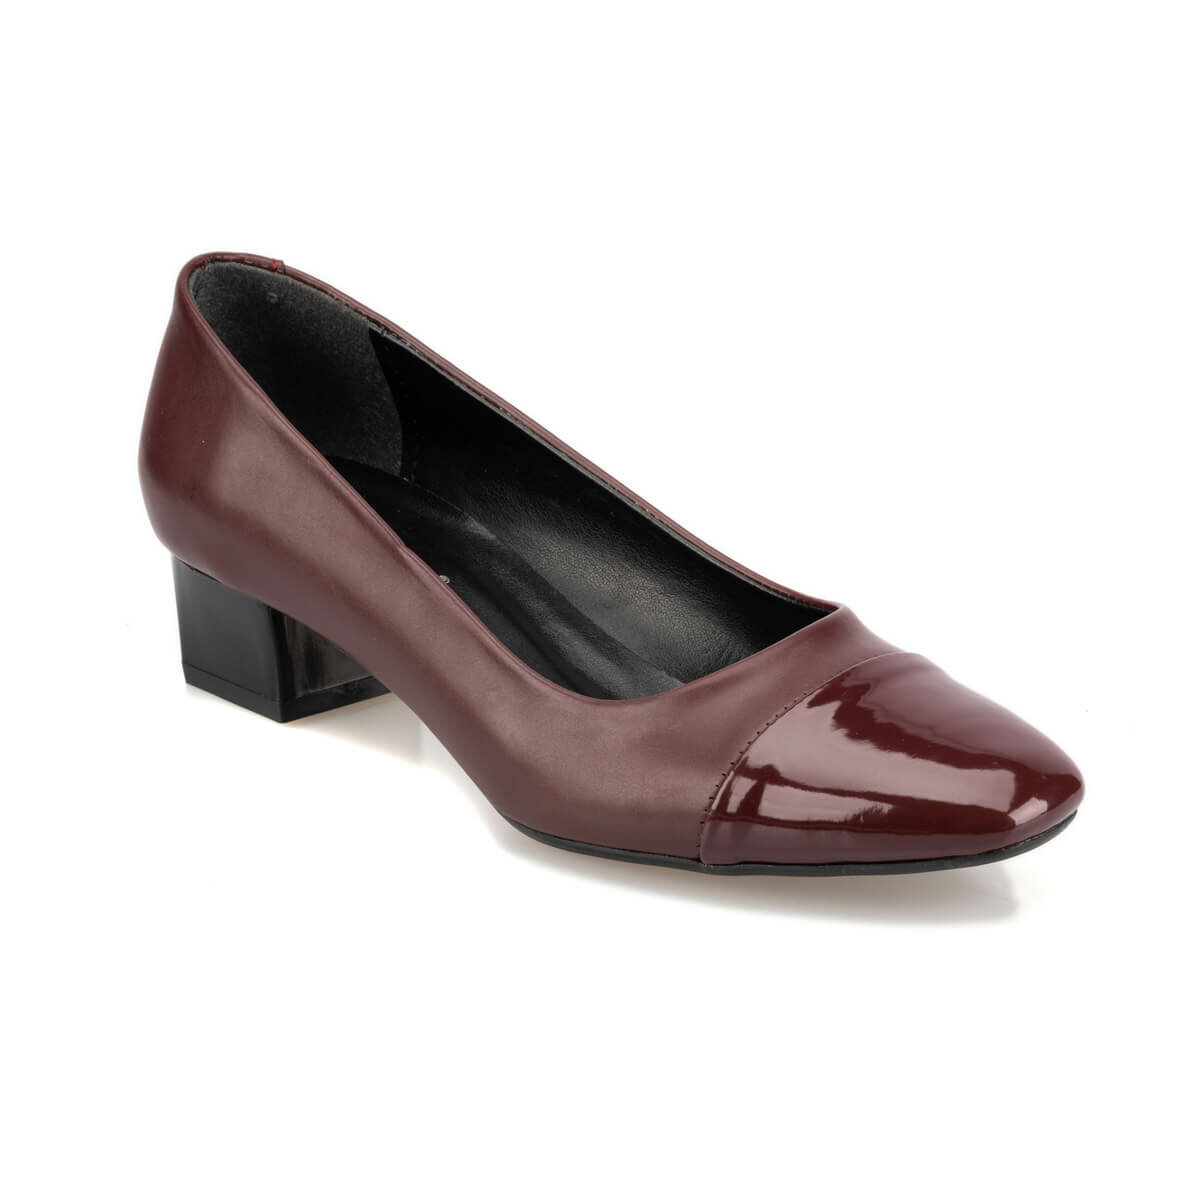 FLO 92. 314050.Z Burgundy Women 'S Shoes Polaris